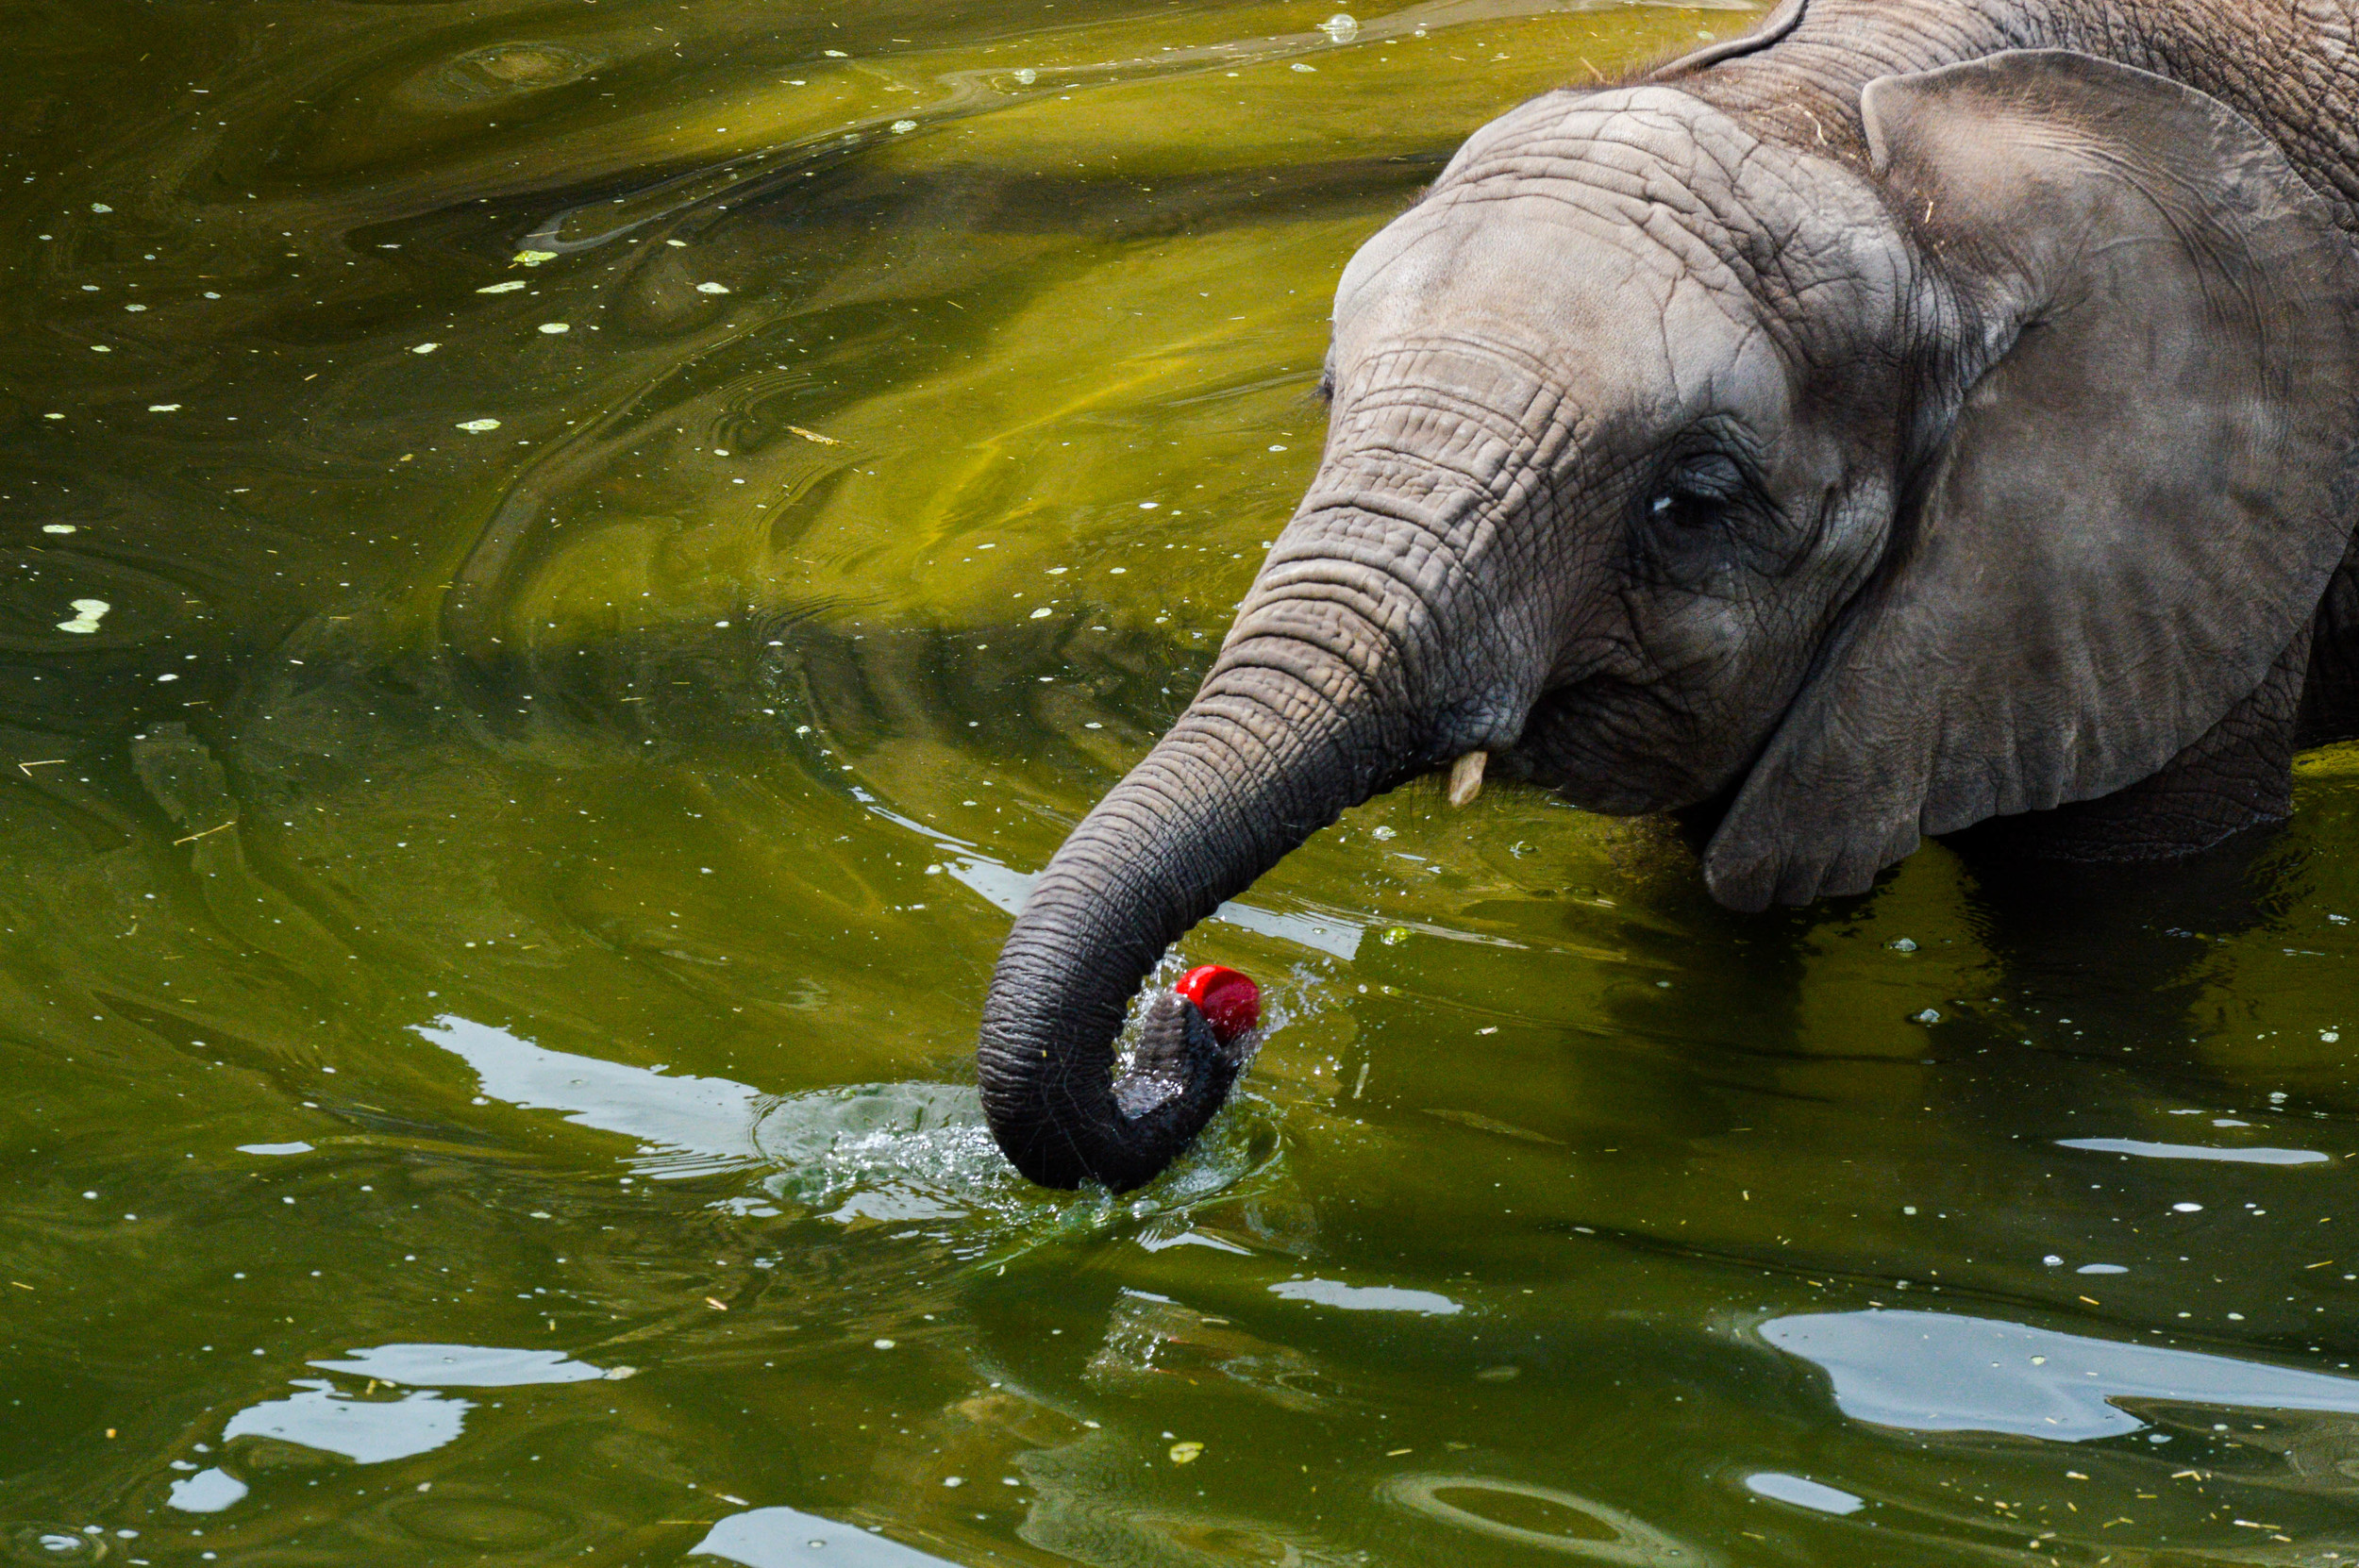 Baby Elephant going for apple